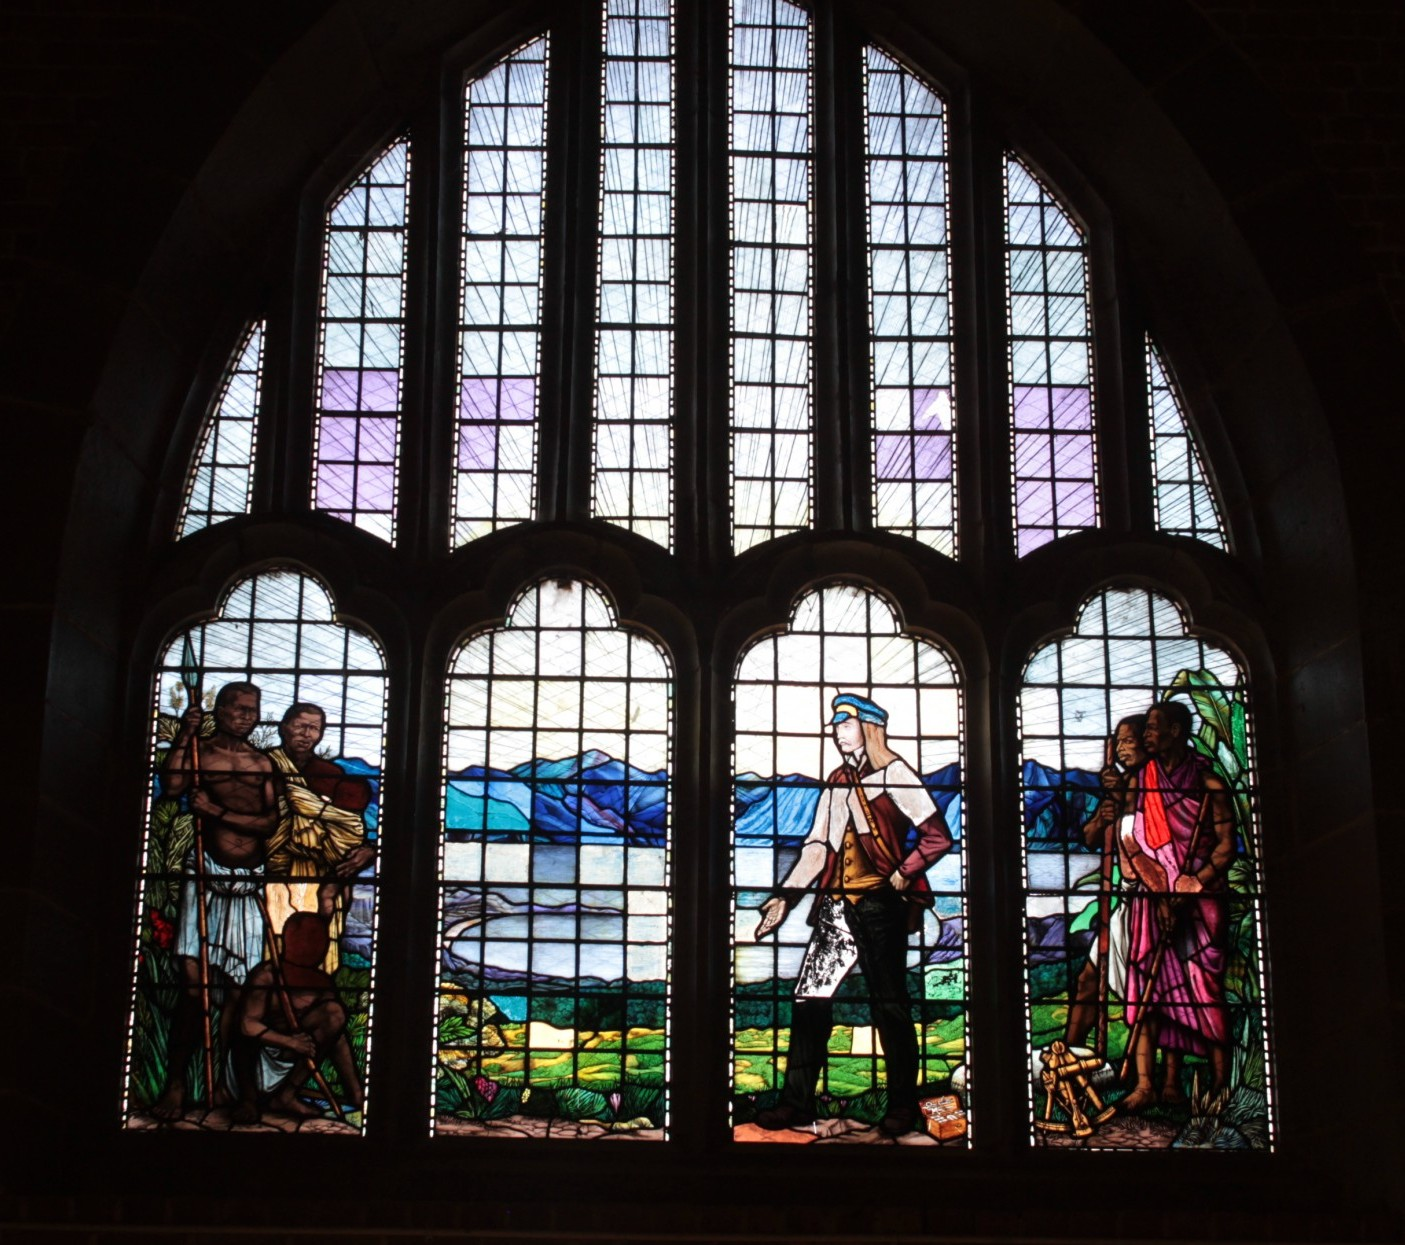 The stained glass window above the entrance to Livingstonia church